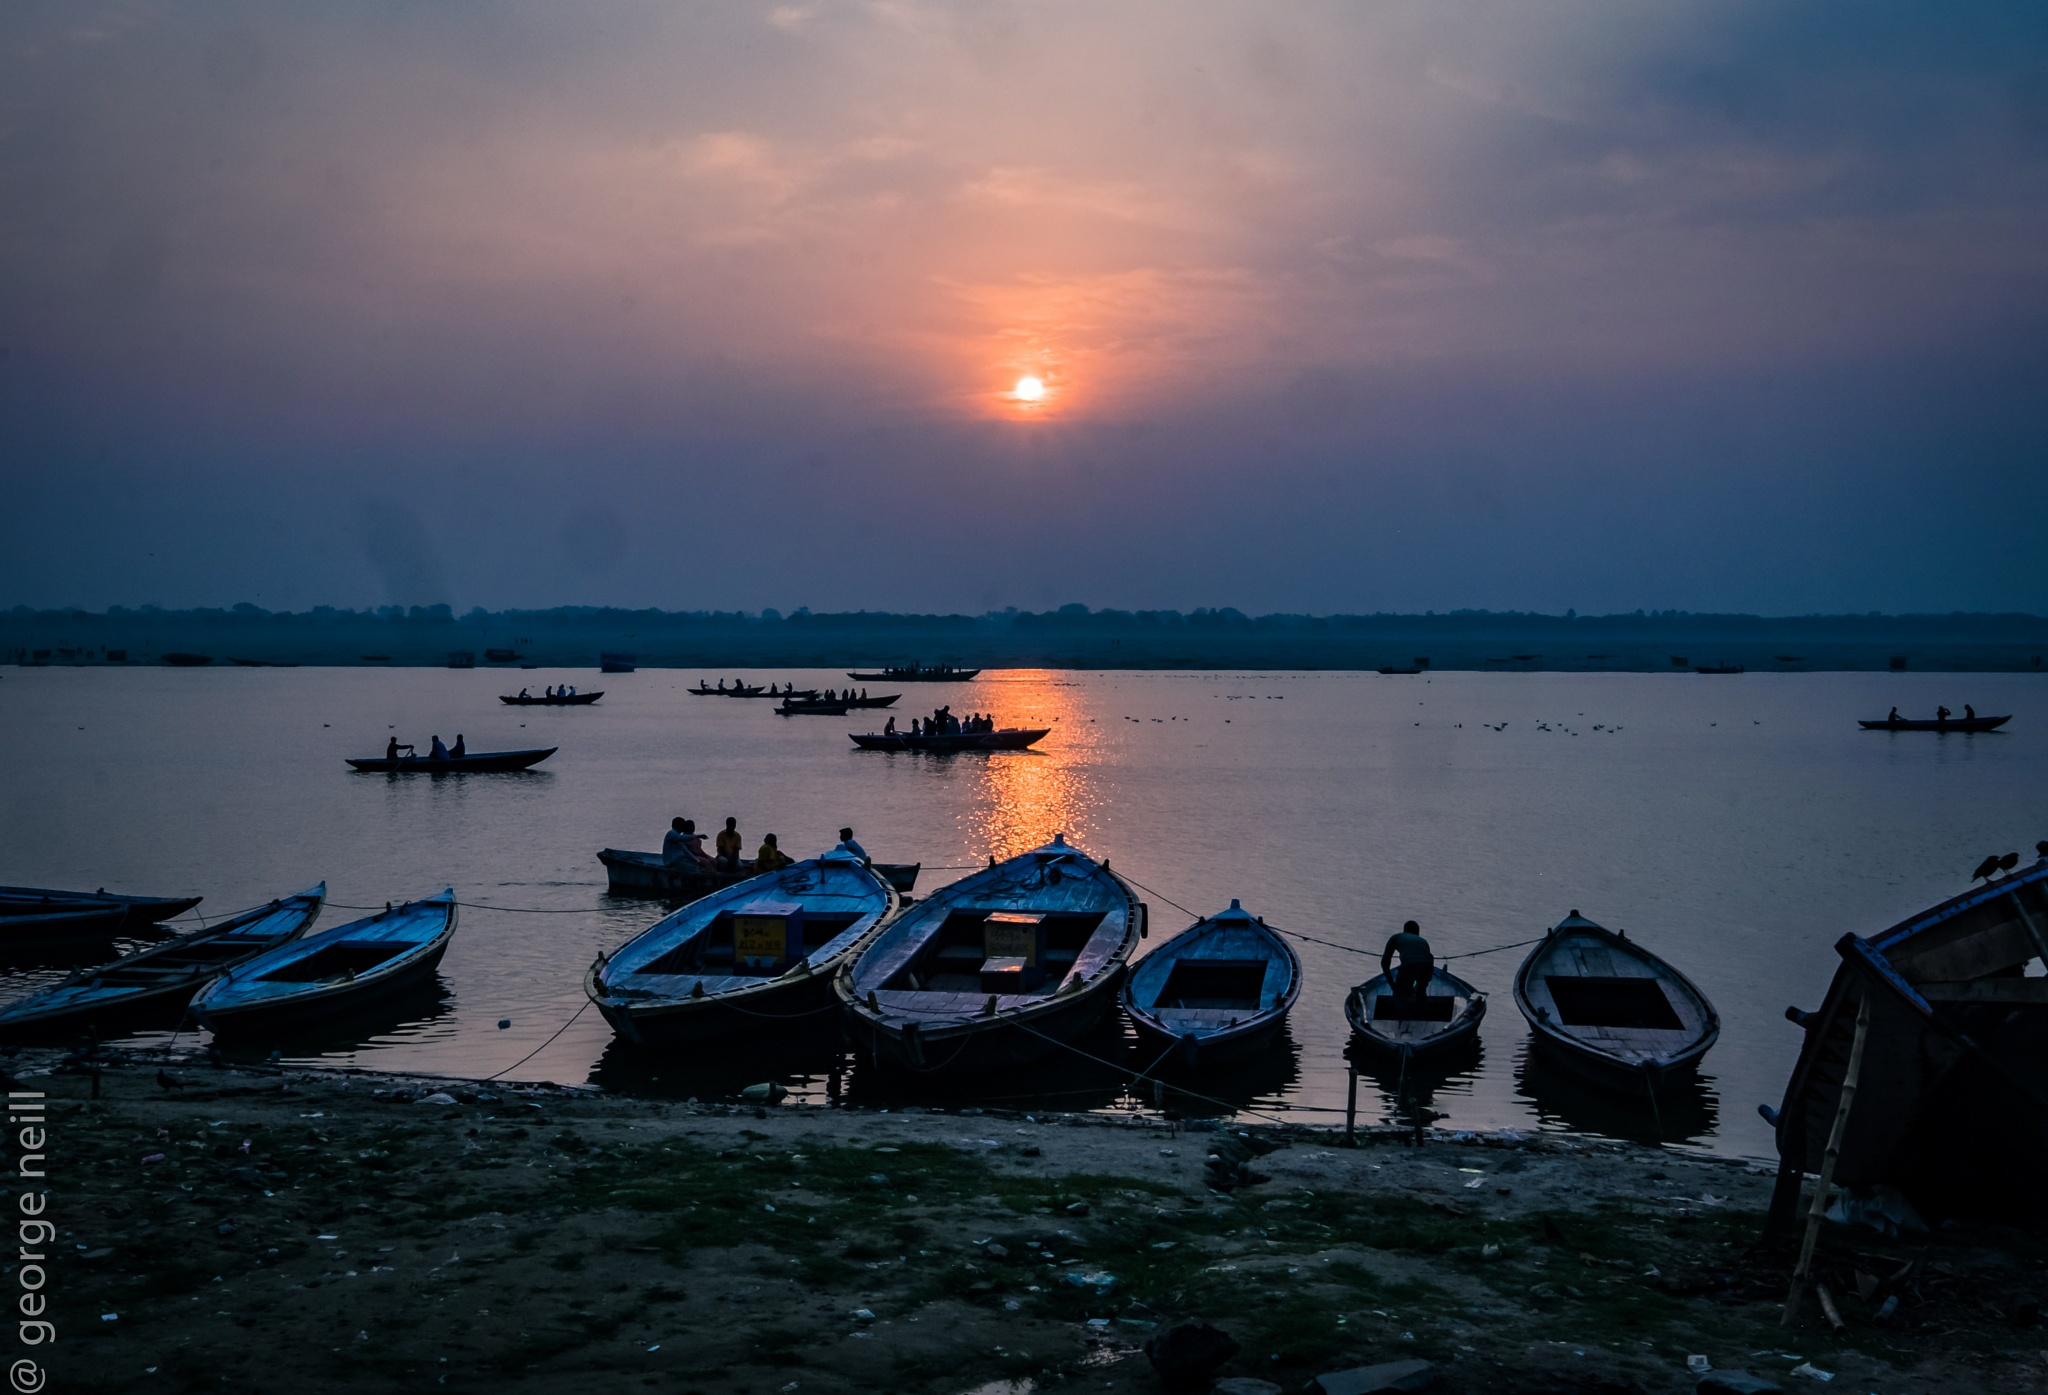 More boats on the Ganges by George Neill